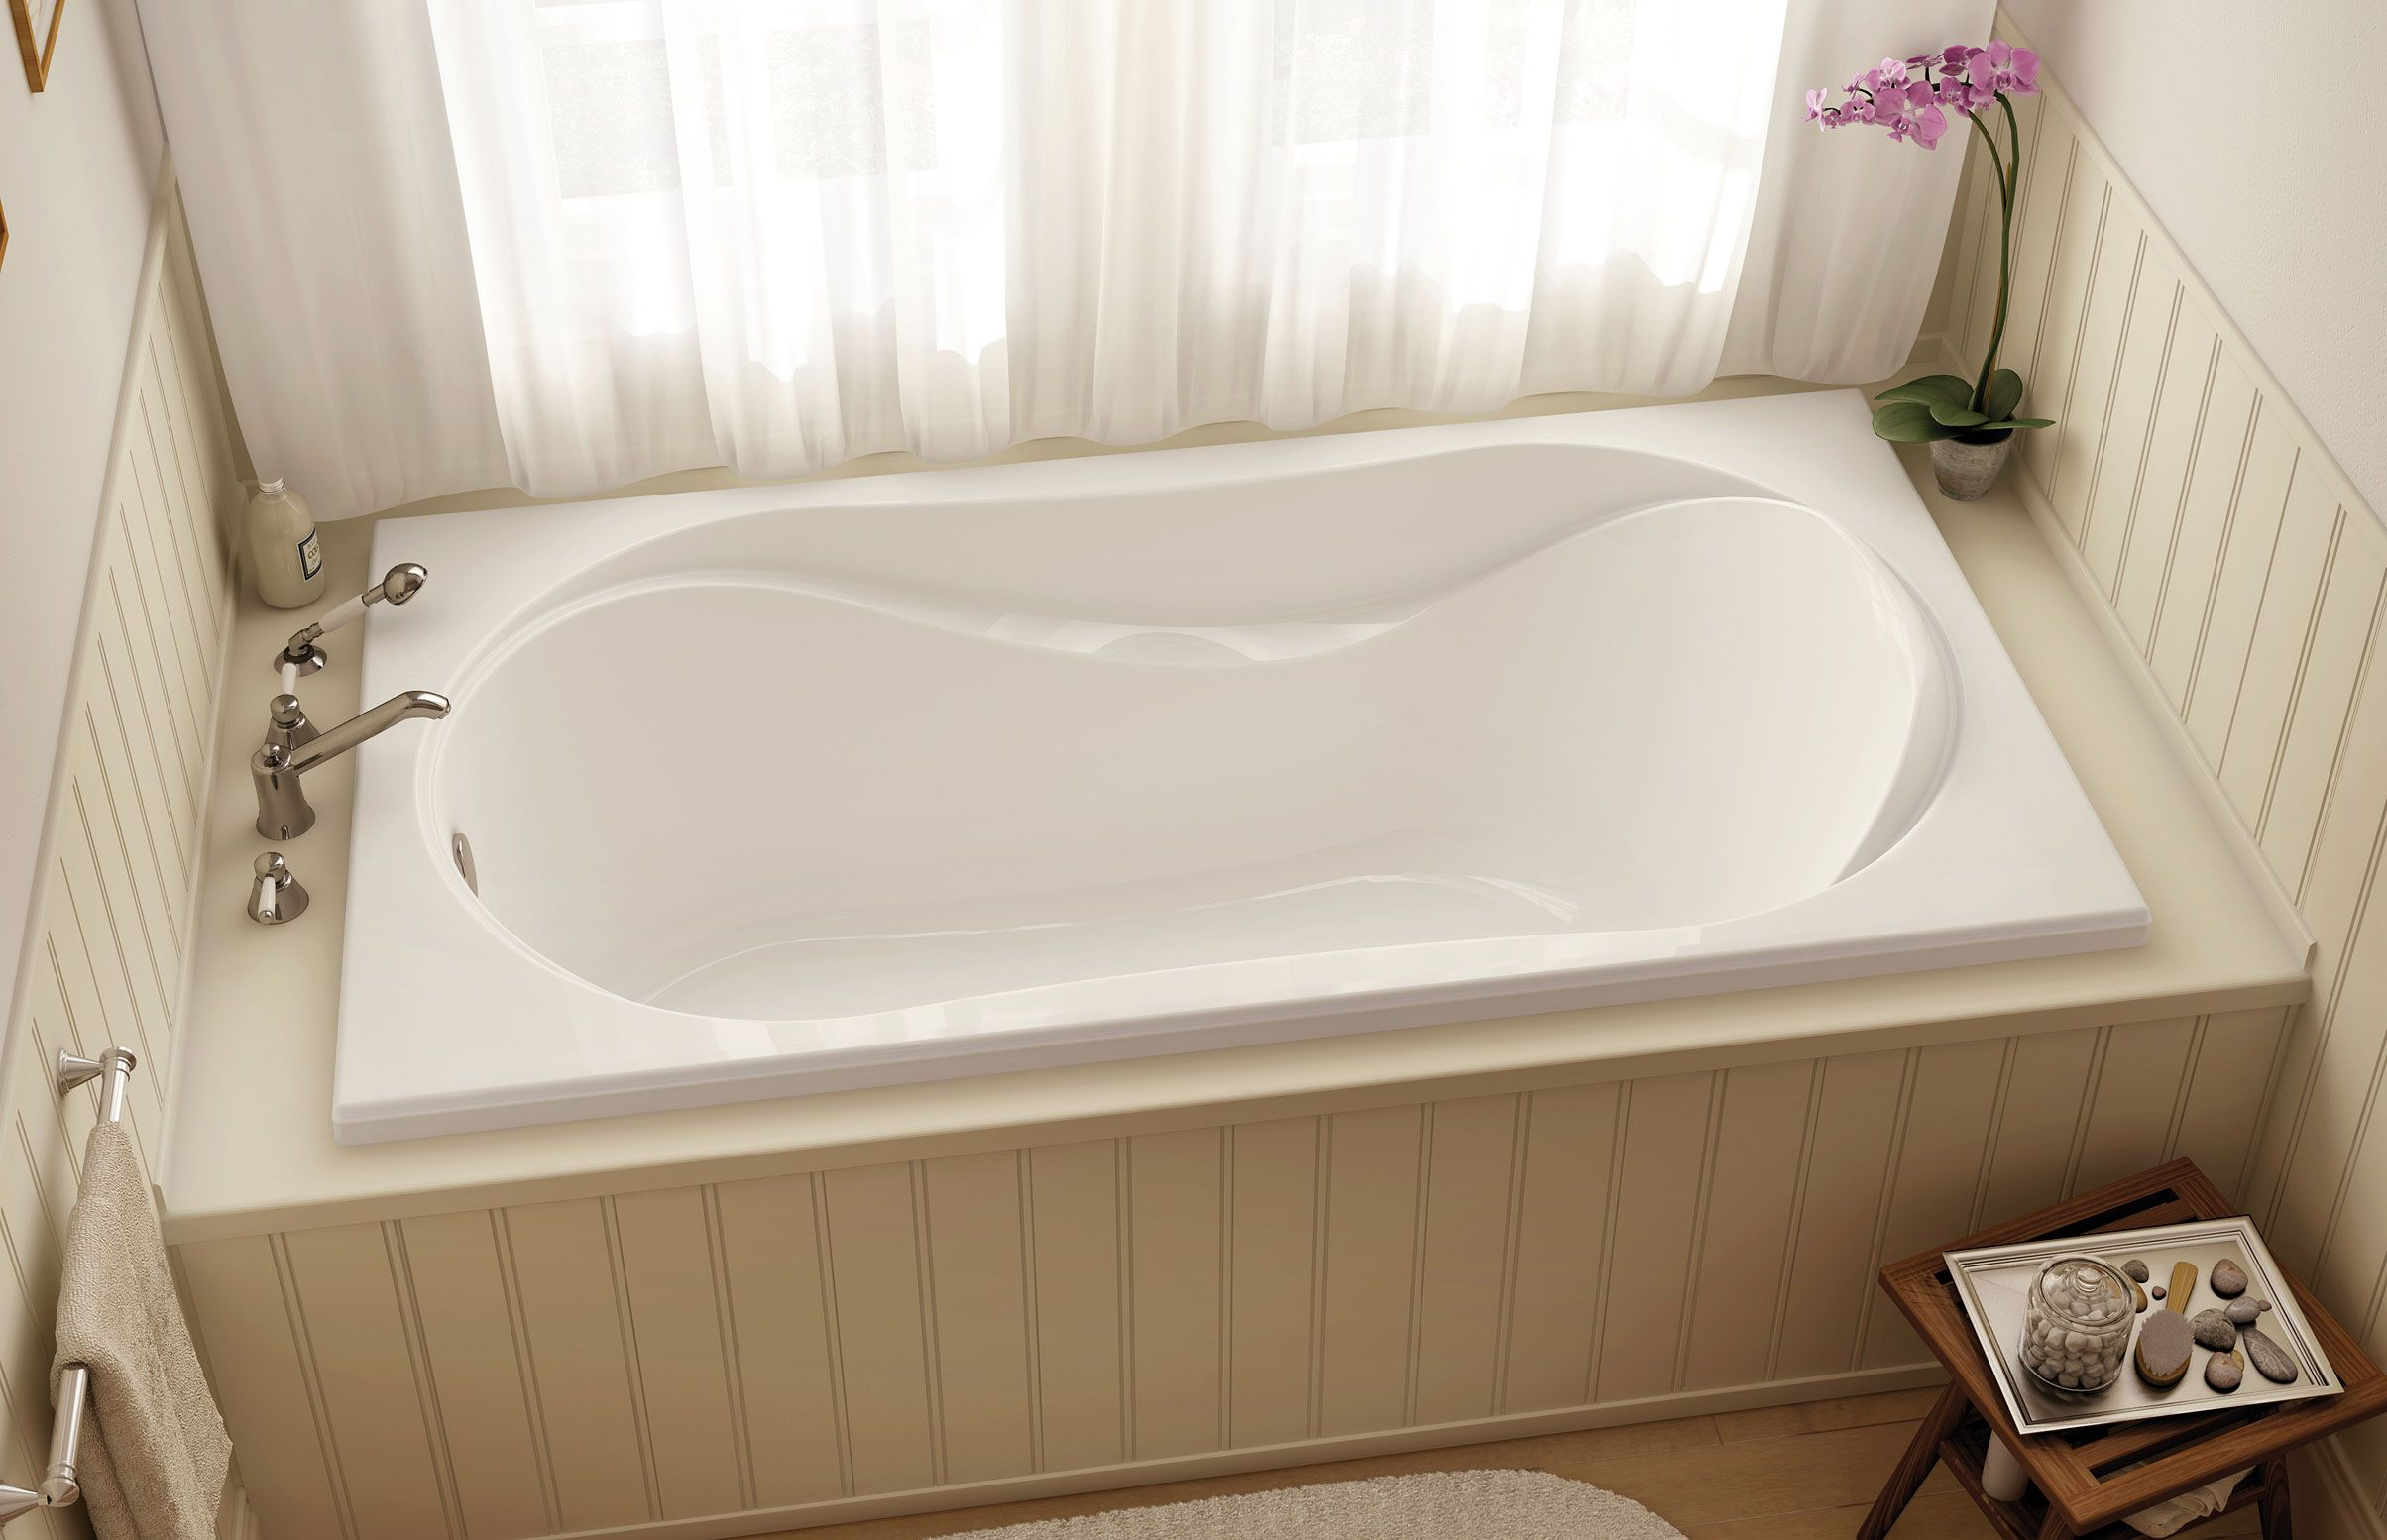 Cocoon Alcove or Drop-in bathtub - Advanta by MAAX | For the Home ...